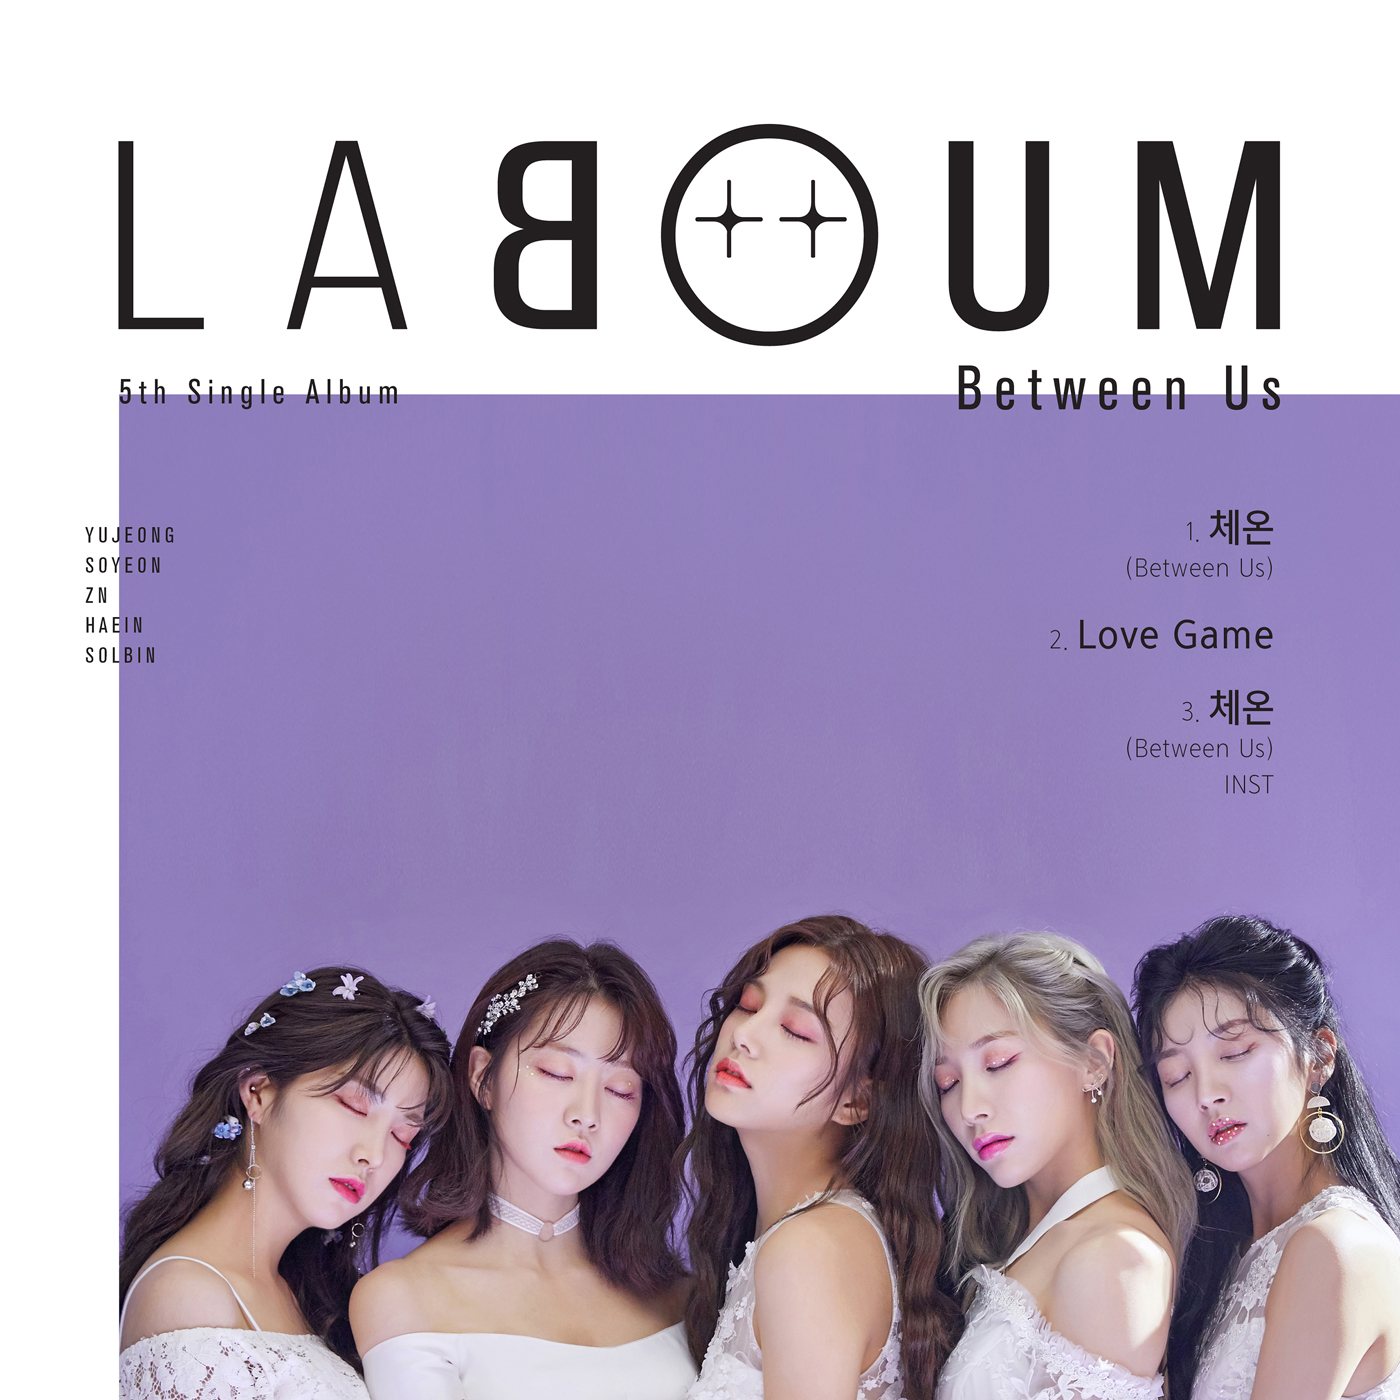 20181002.2325.5 LABOUM - Between Us cover.jpg